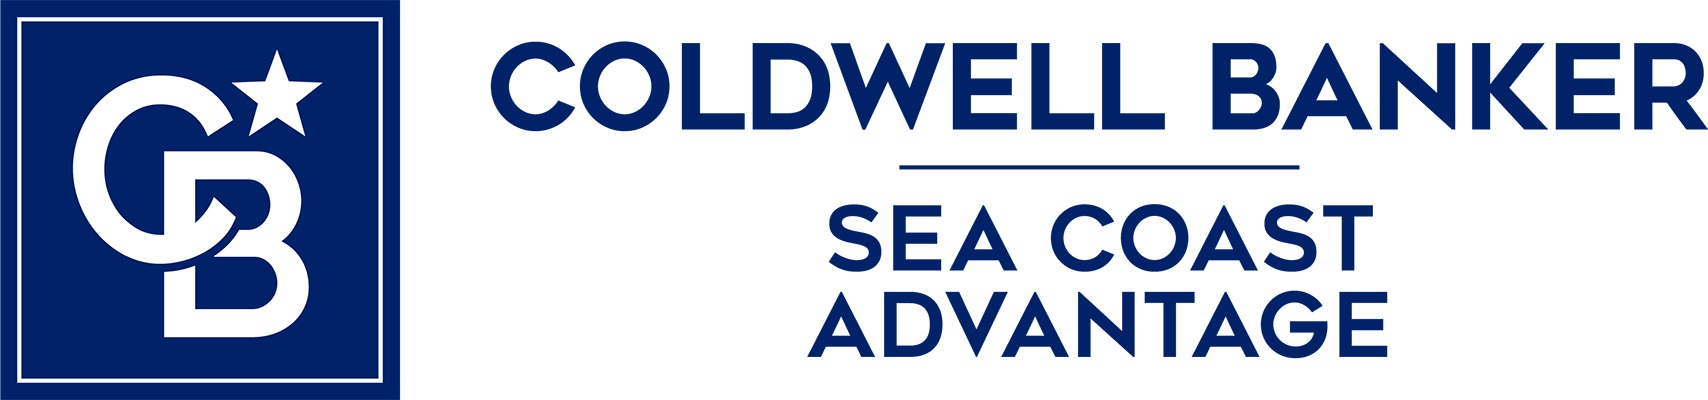 Ray Repage - Coldwell Banker Sea Coast Advantage Realty Logo